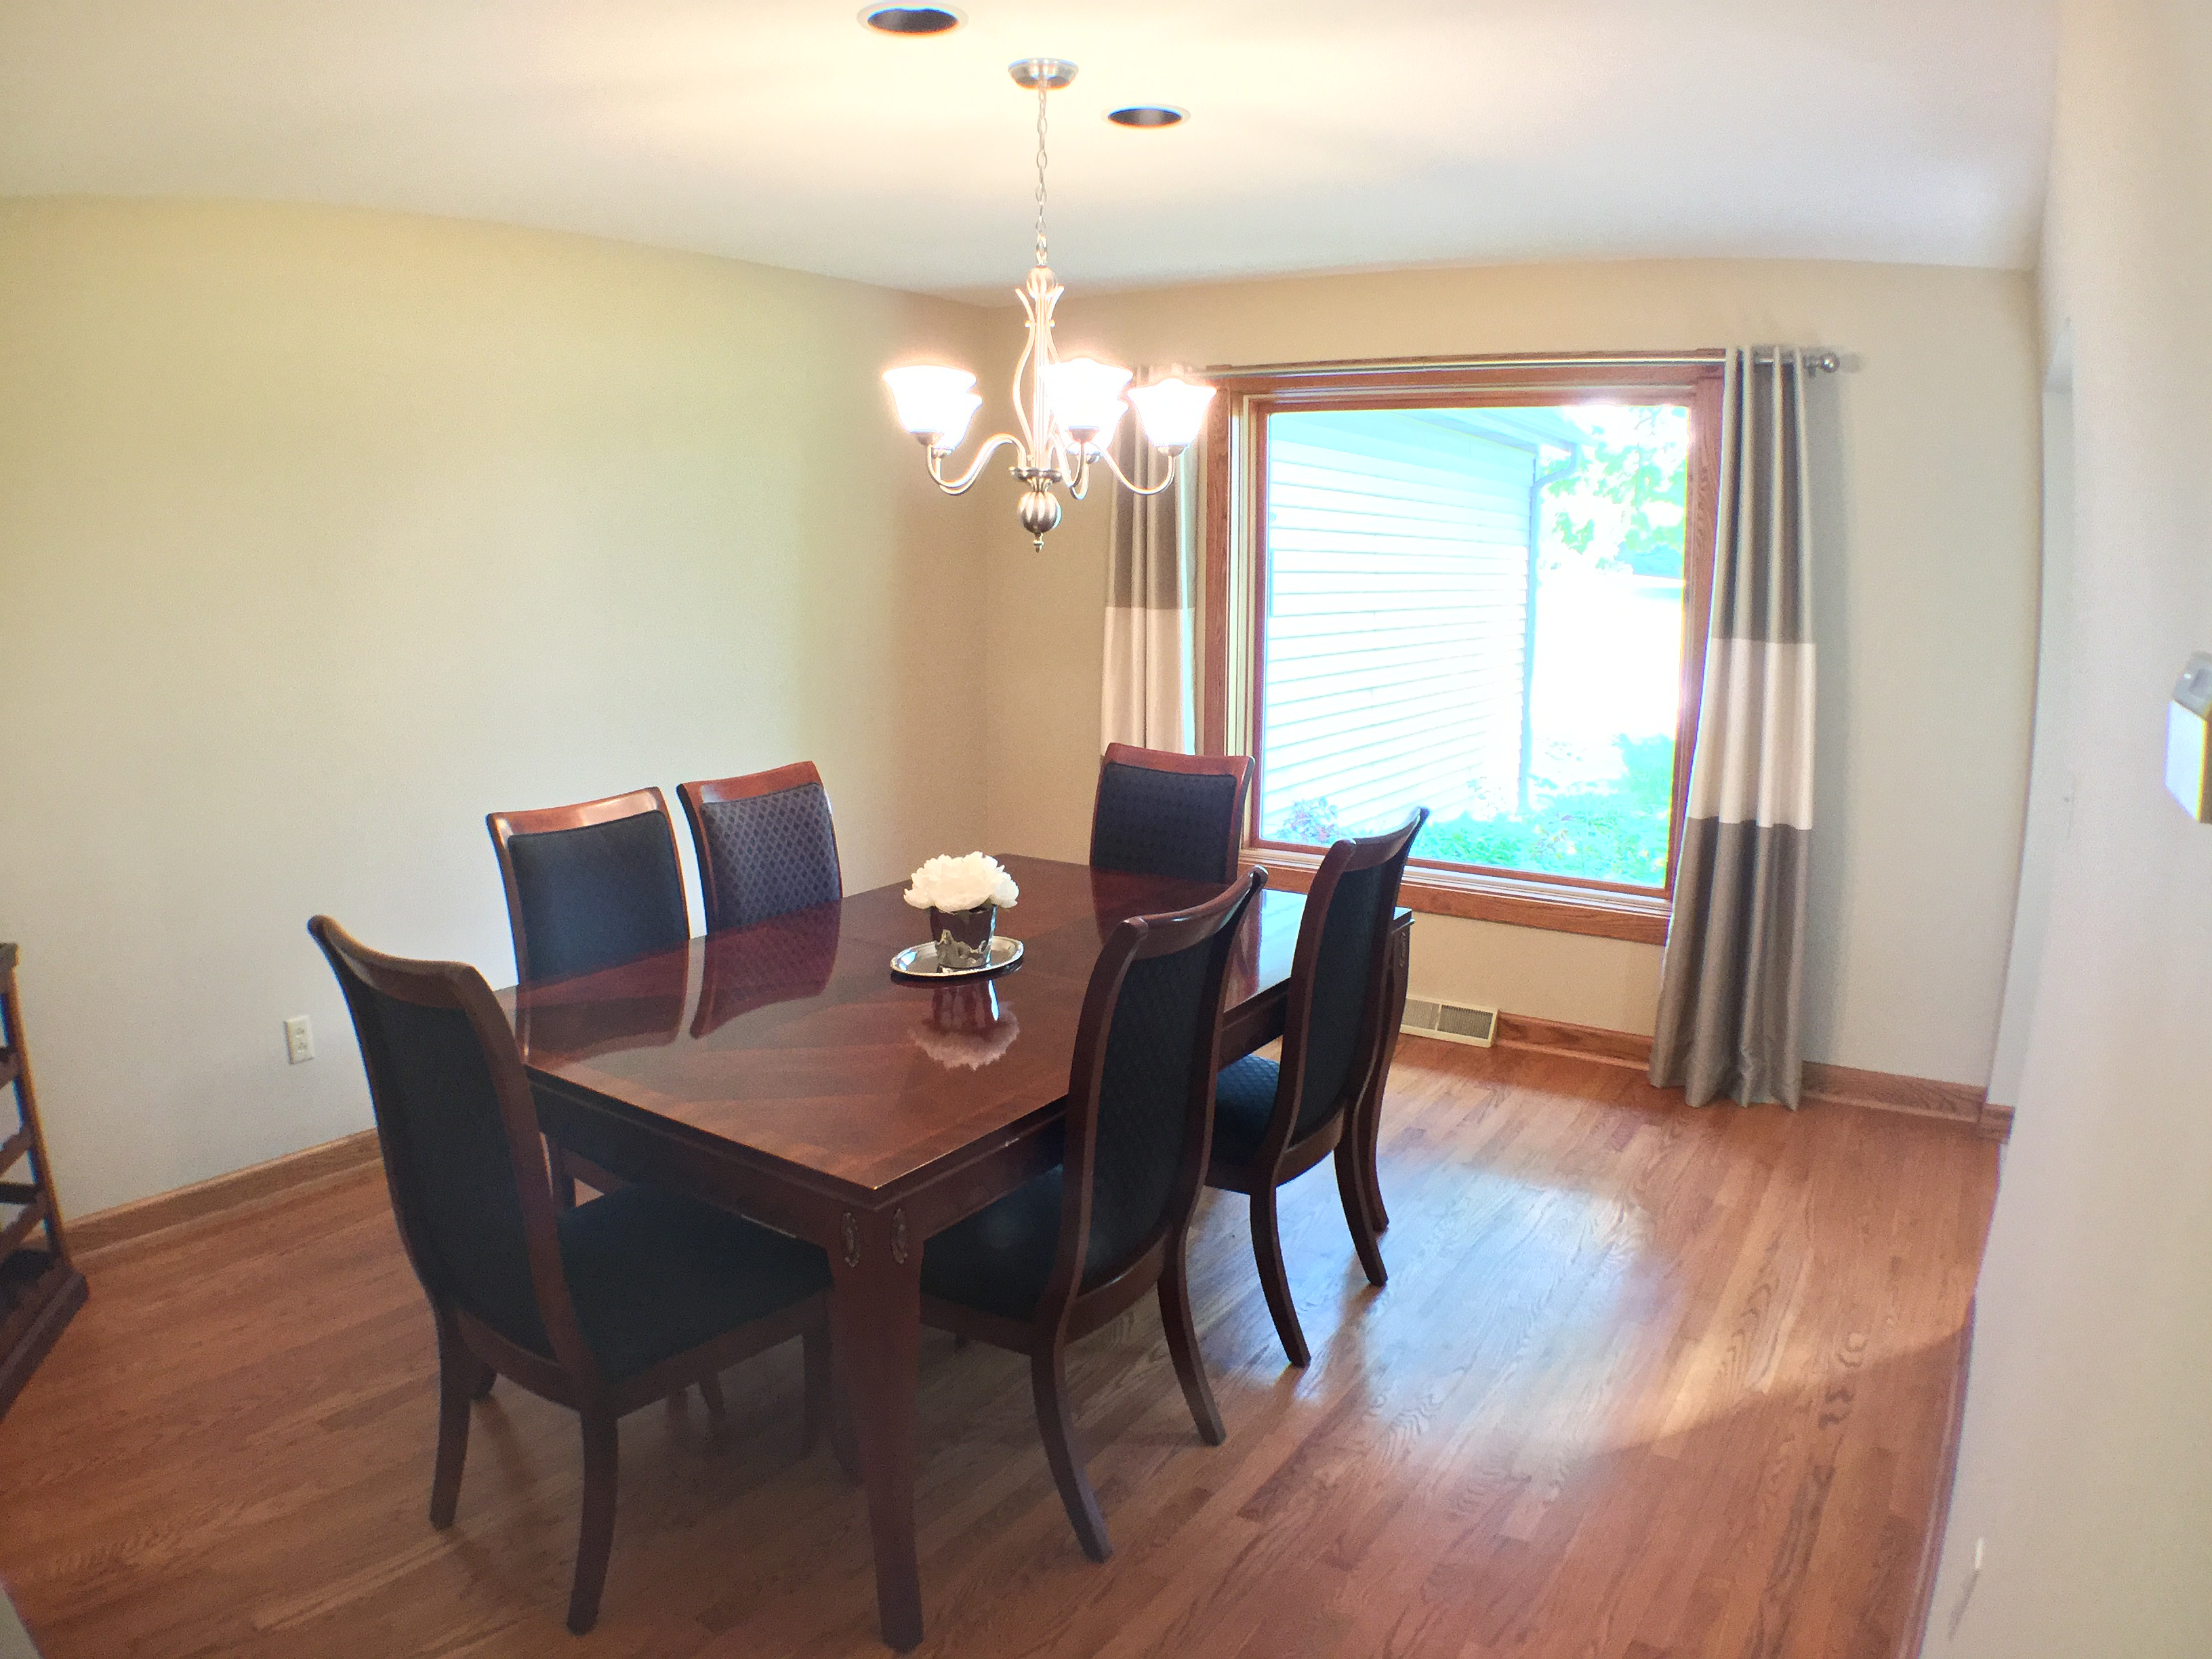 Dining Room With Fresh Paint And New Light Fixture Sourced By Staged To Sell China Hutch Removed Homeowners Furniture